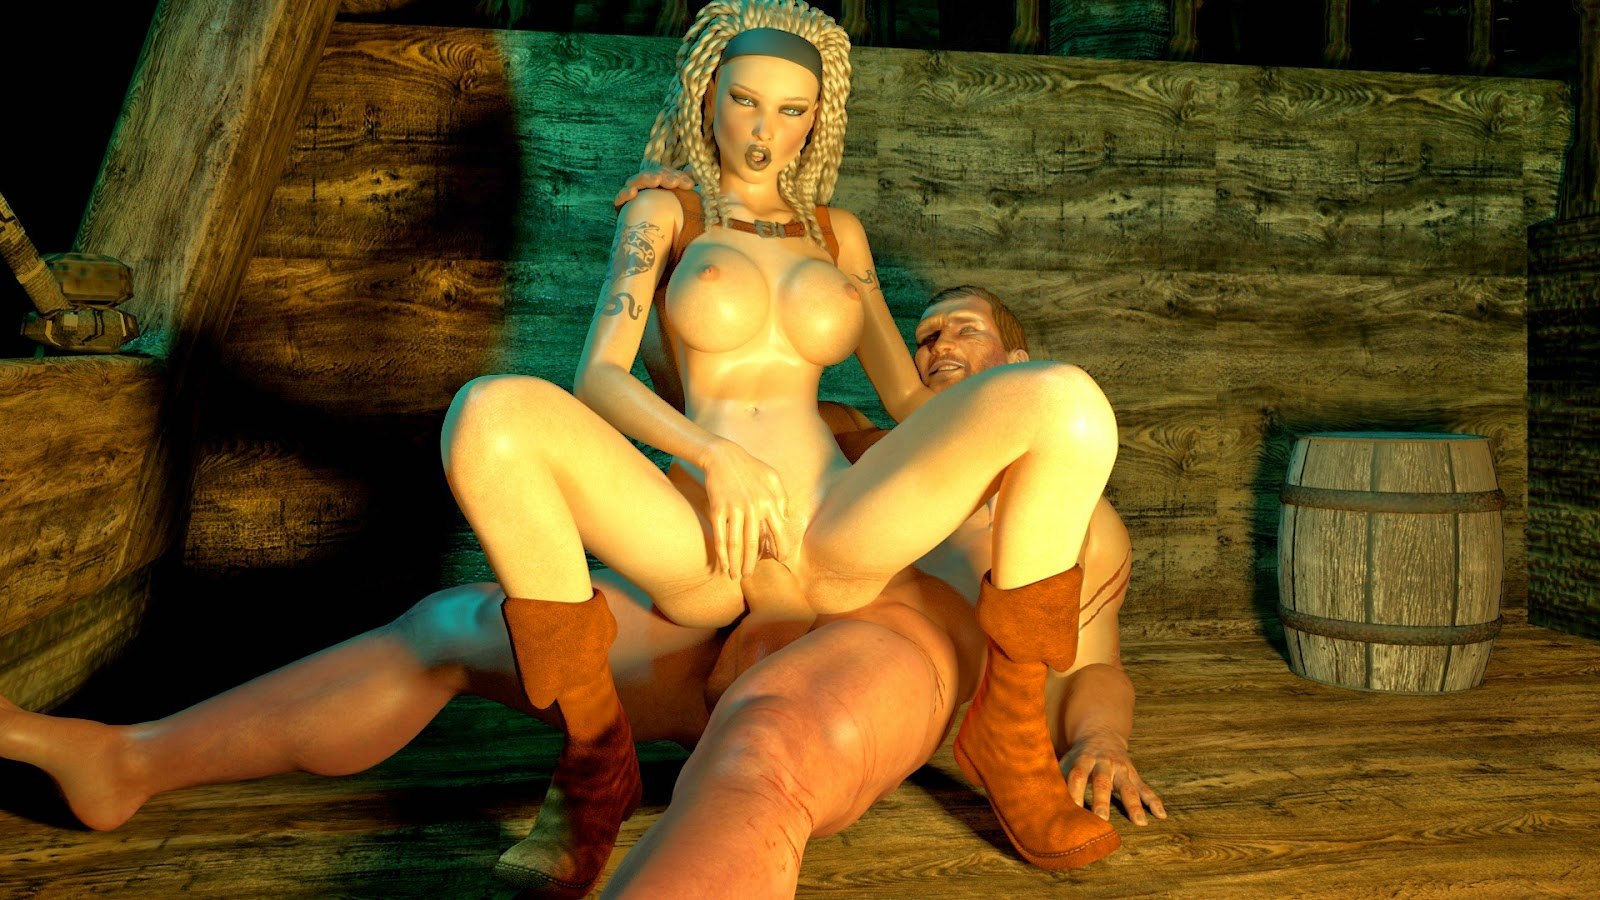 Monster rpg porn games xxx tube